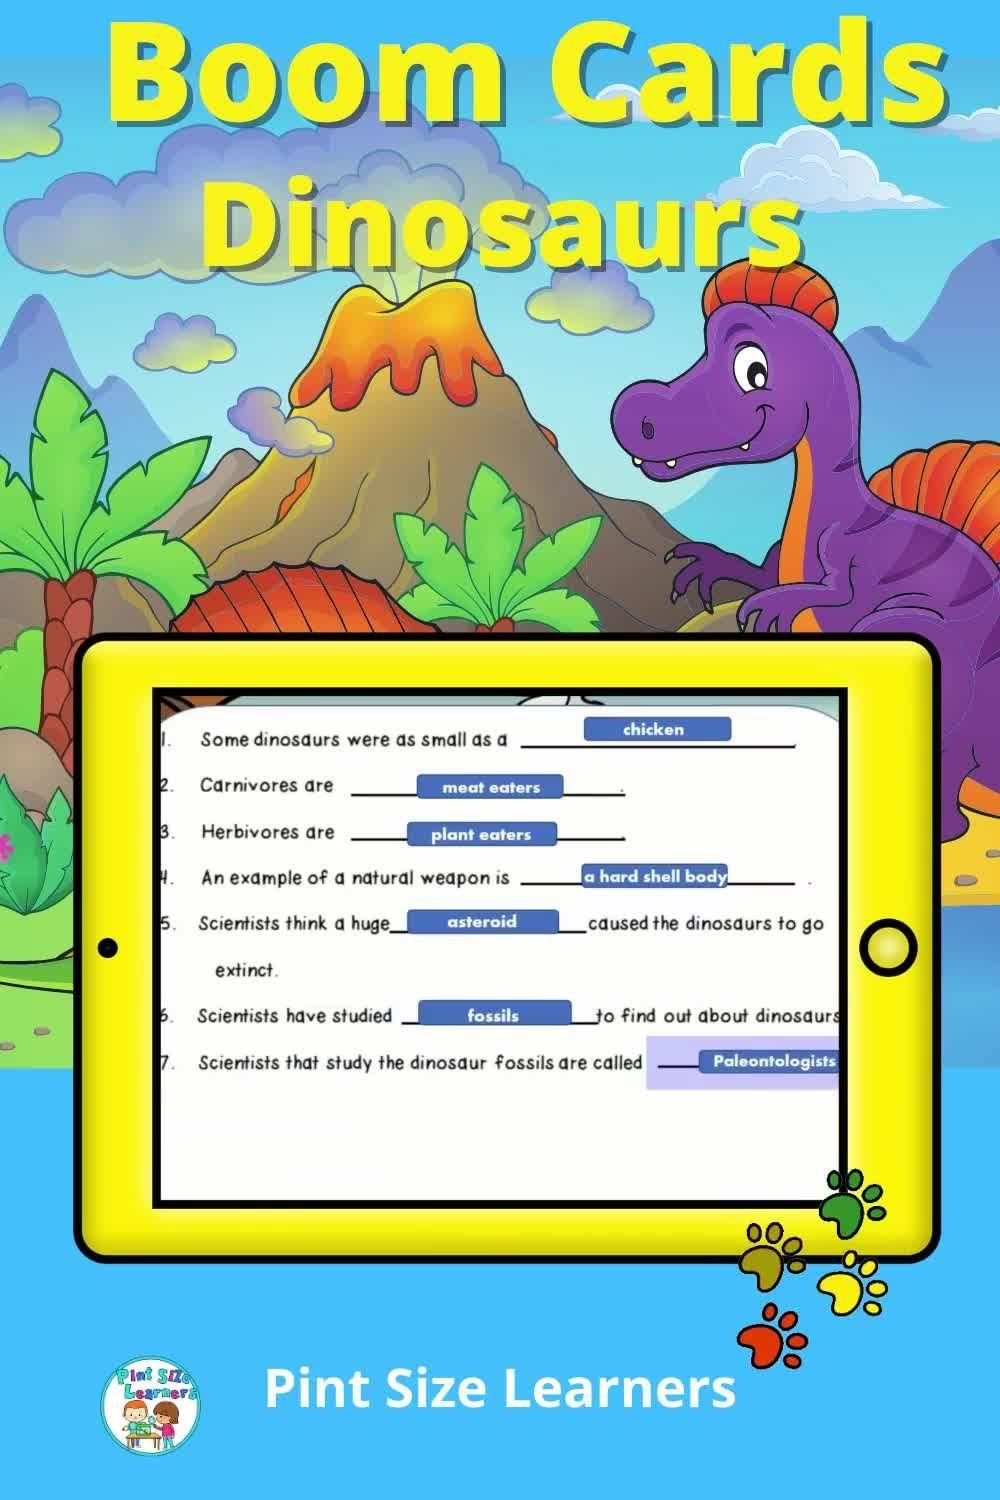 Distance Learning Dinosaurs Science Reading And Vocabulary Boom Cards Video In 2021 Dinosaur Reading Activities Science Reading Nonfiction Reading Activities [ 1500 x 1000 Pixel ]